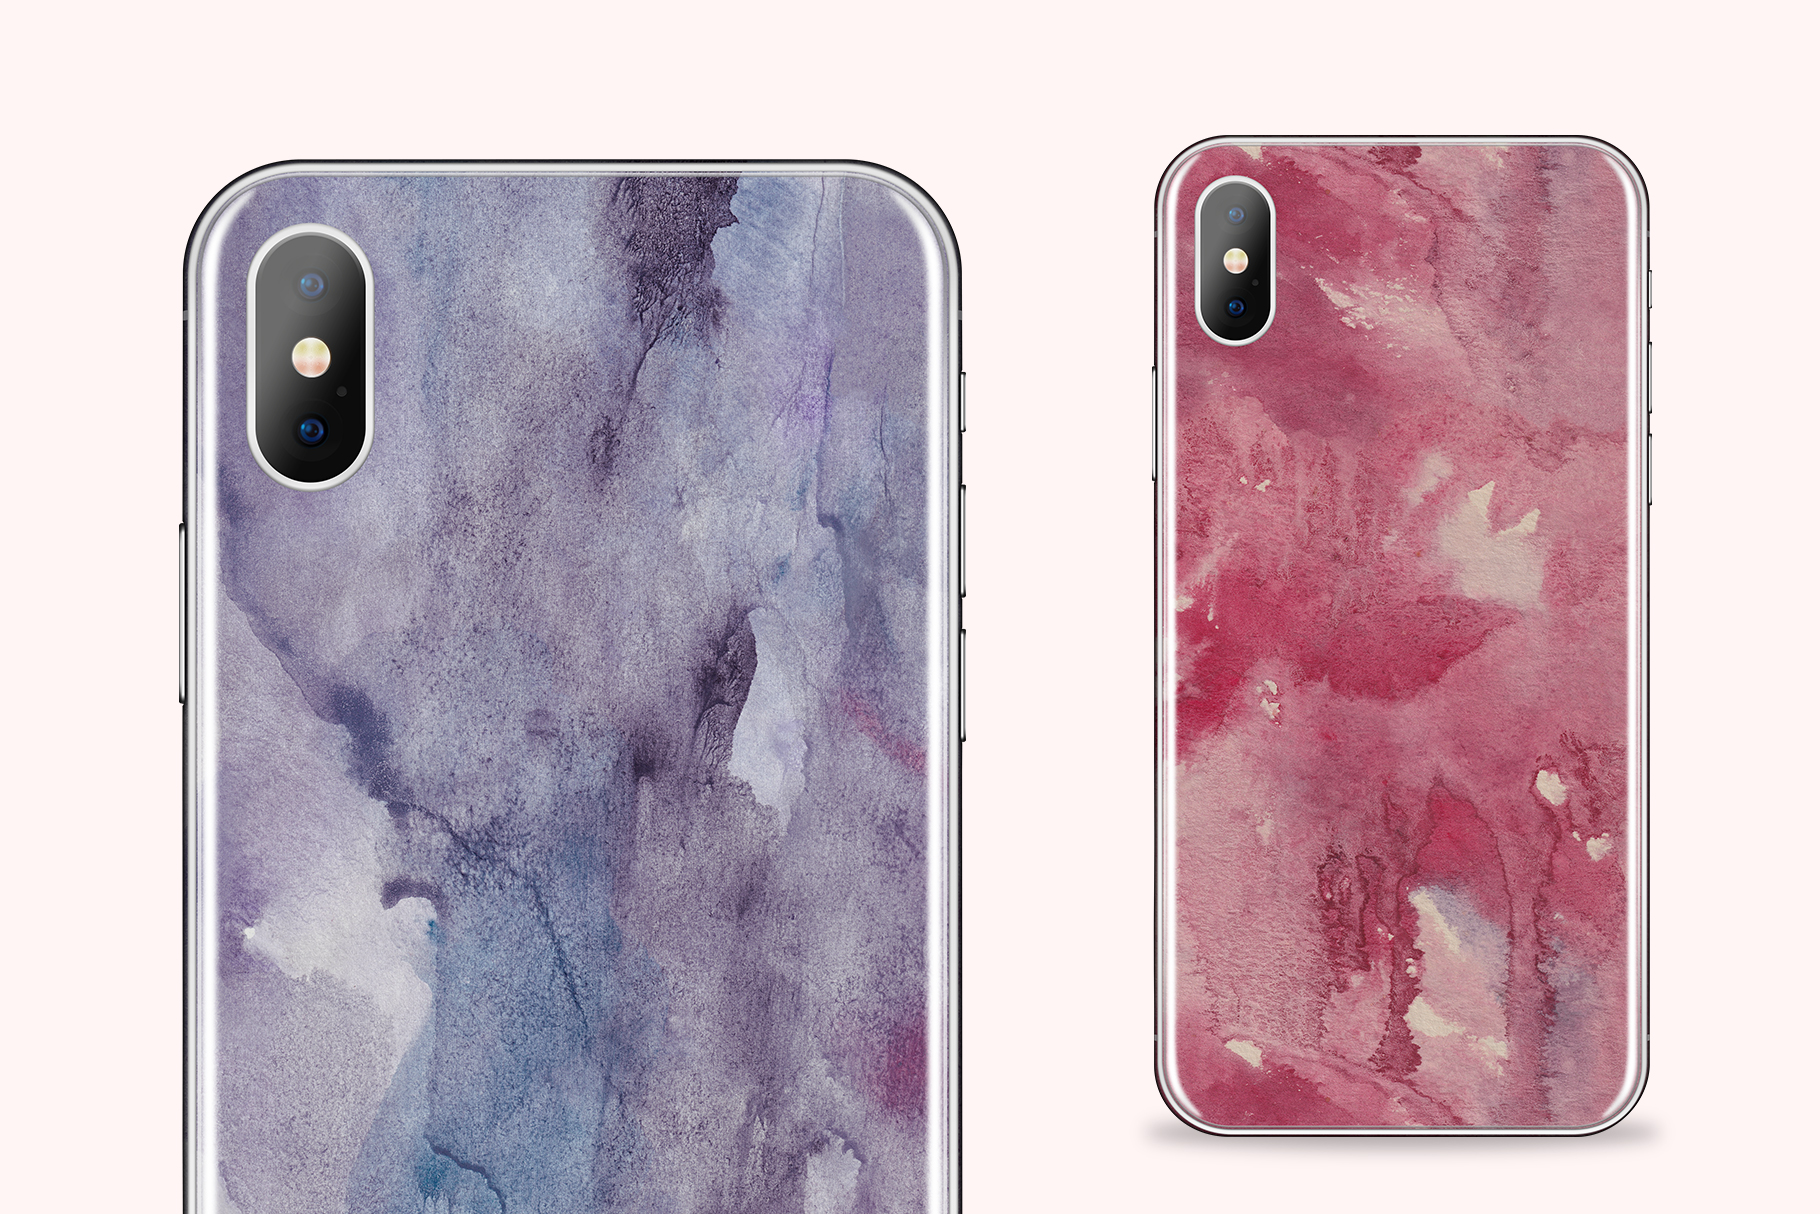 Seamless Watercolor Textures - 10 Watercolour Backgrounds example image 12